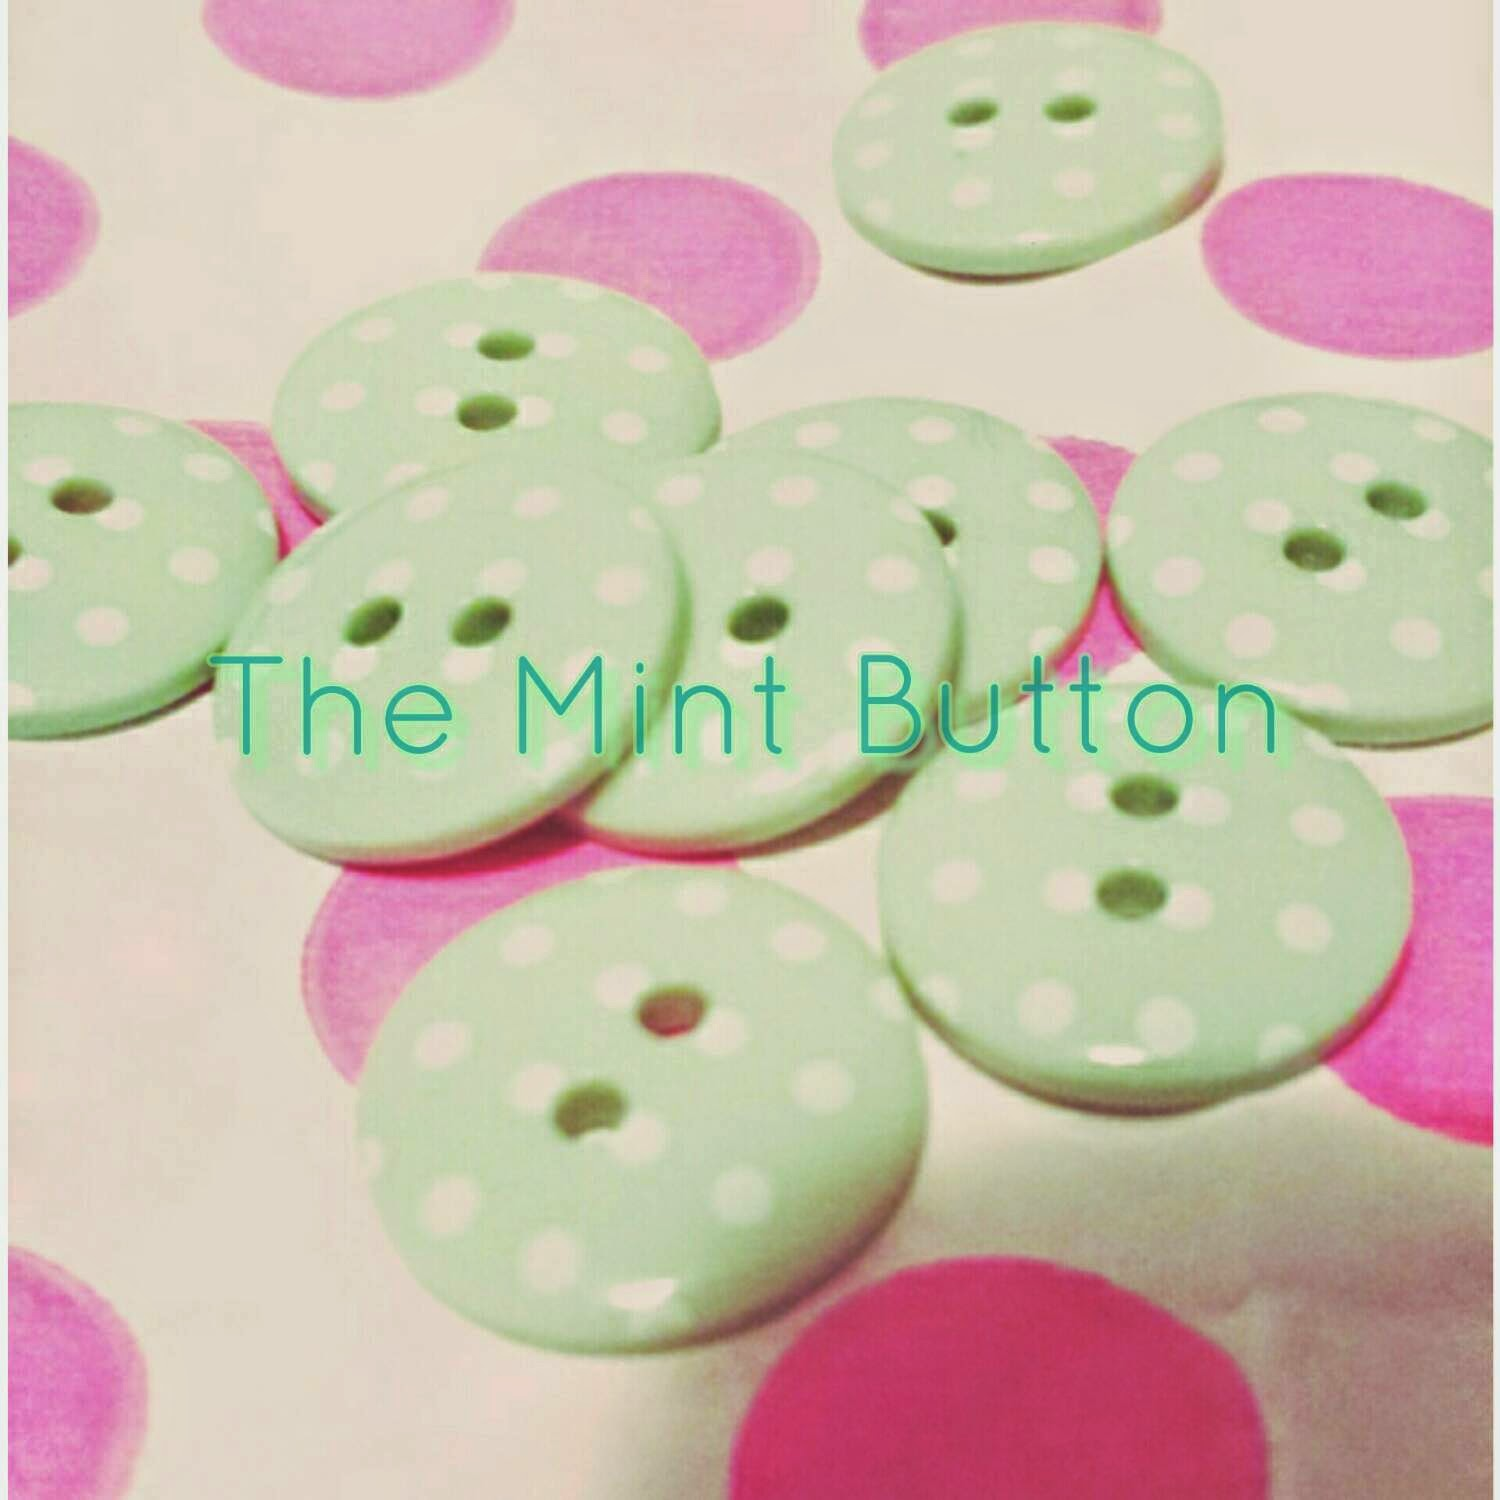 http://themintbutton.etsy.com